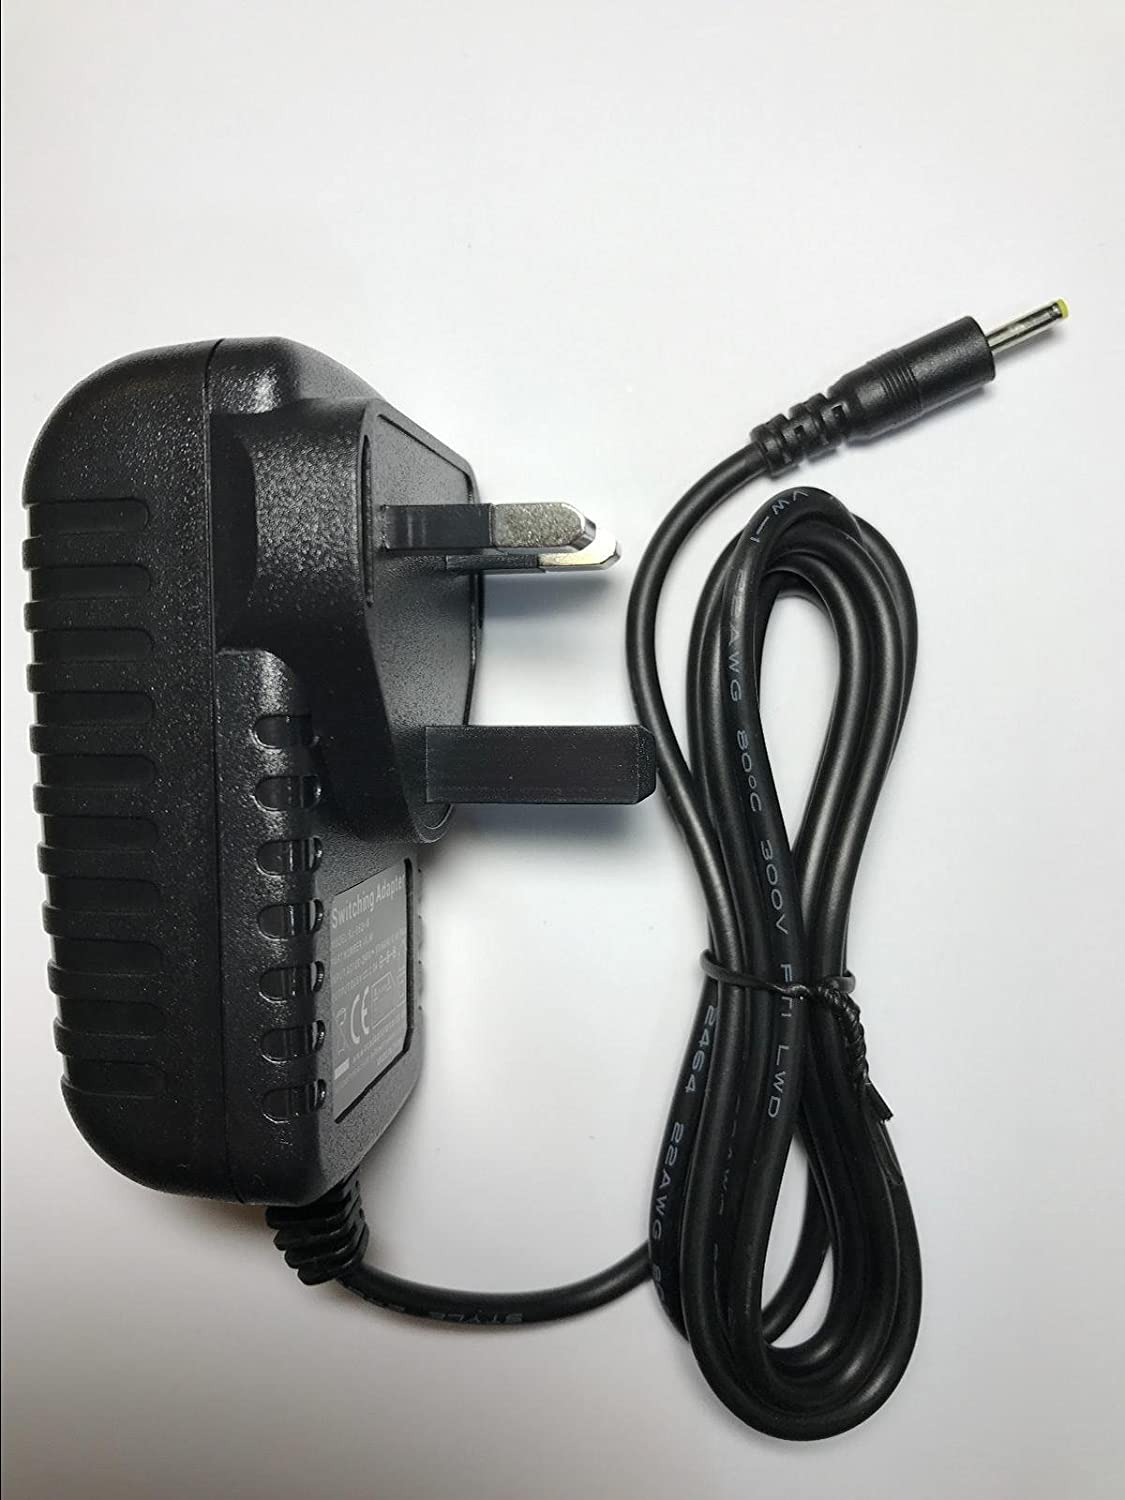 Replacement Power Supply for 6V Worx WX254 Cordless Screwdriver HS